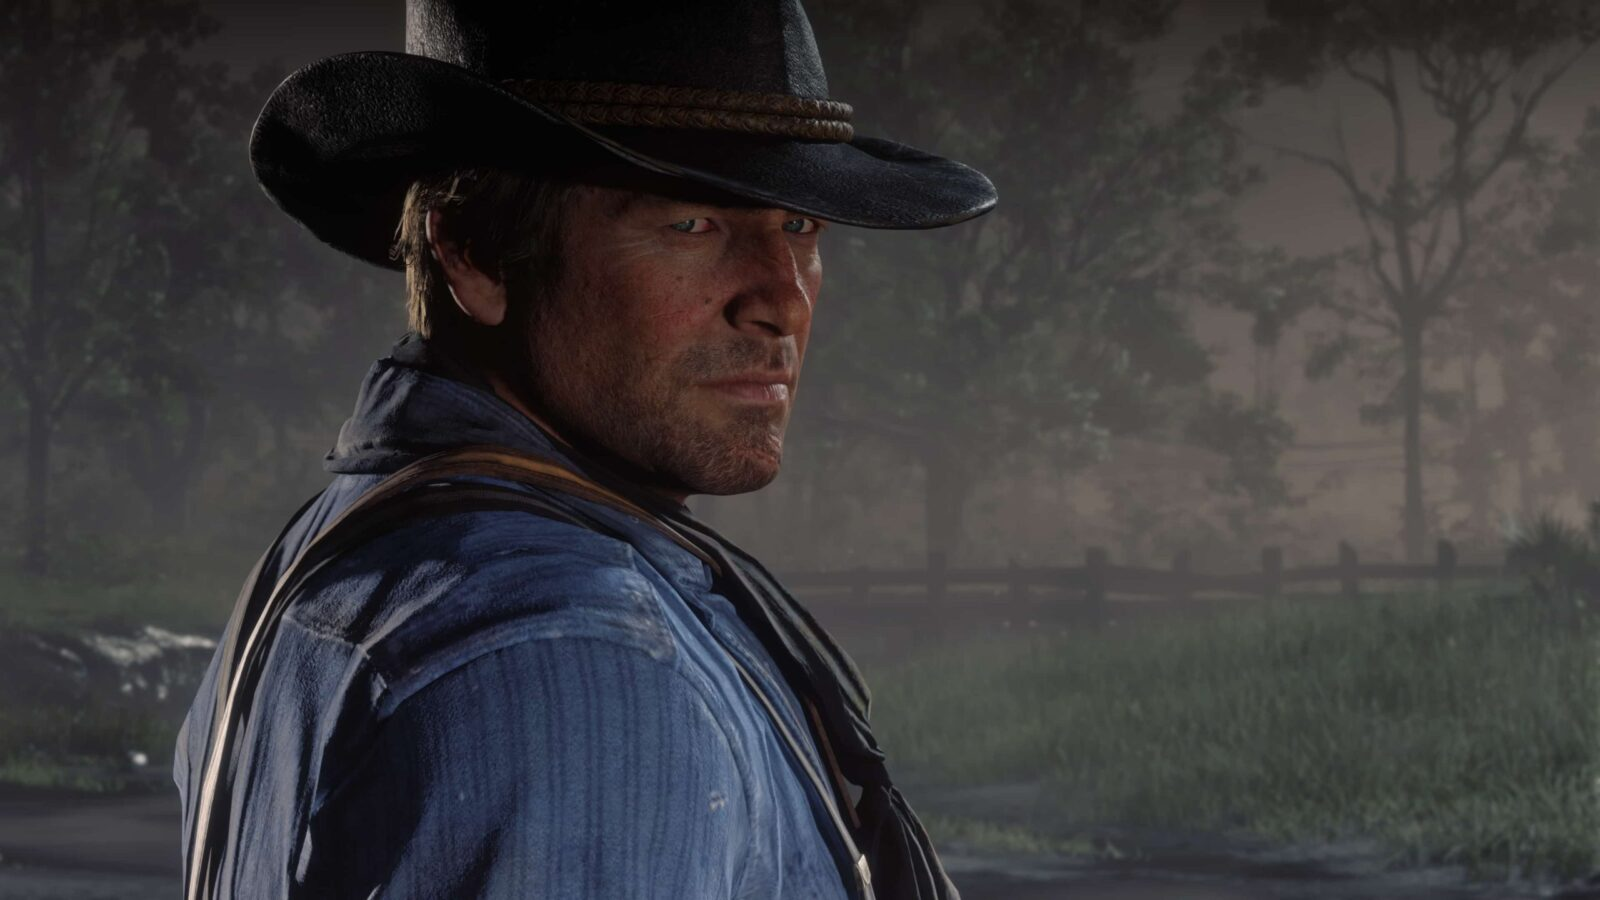 10 games that have strained our devices throughout history